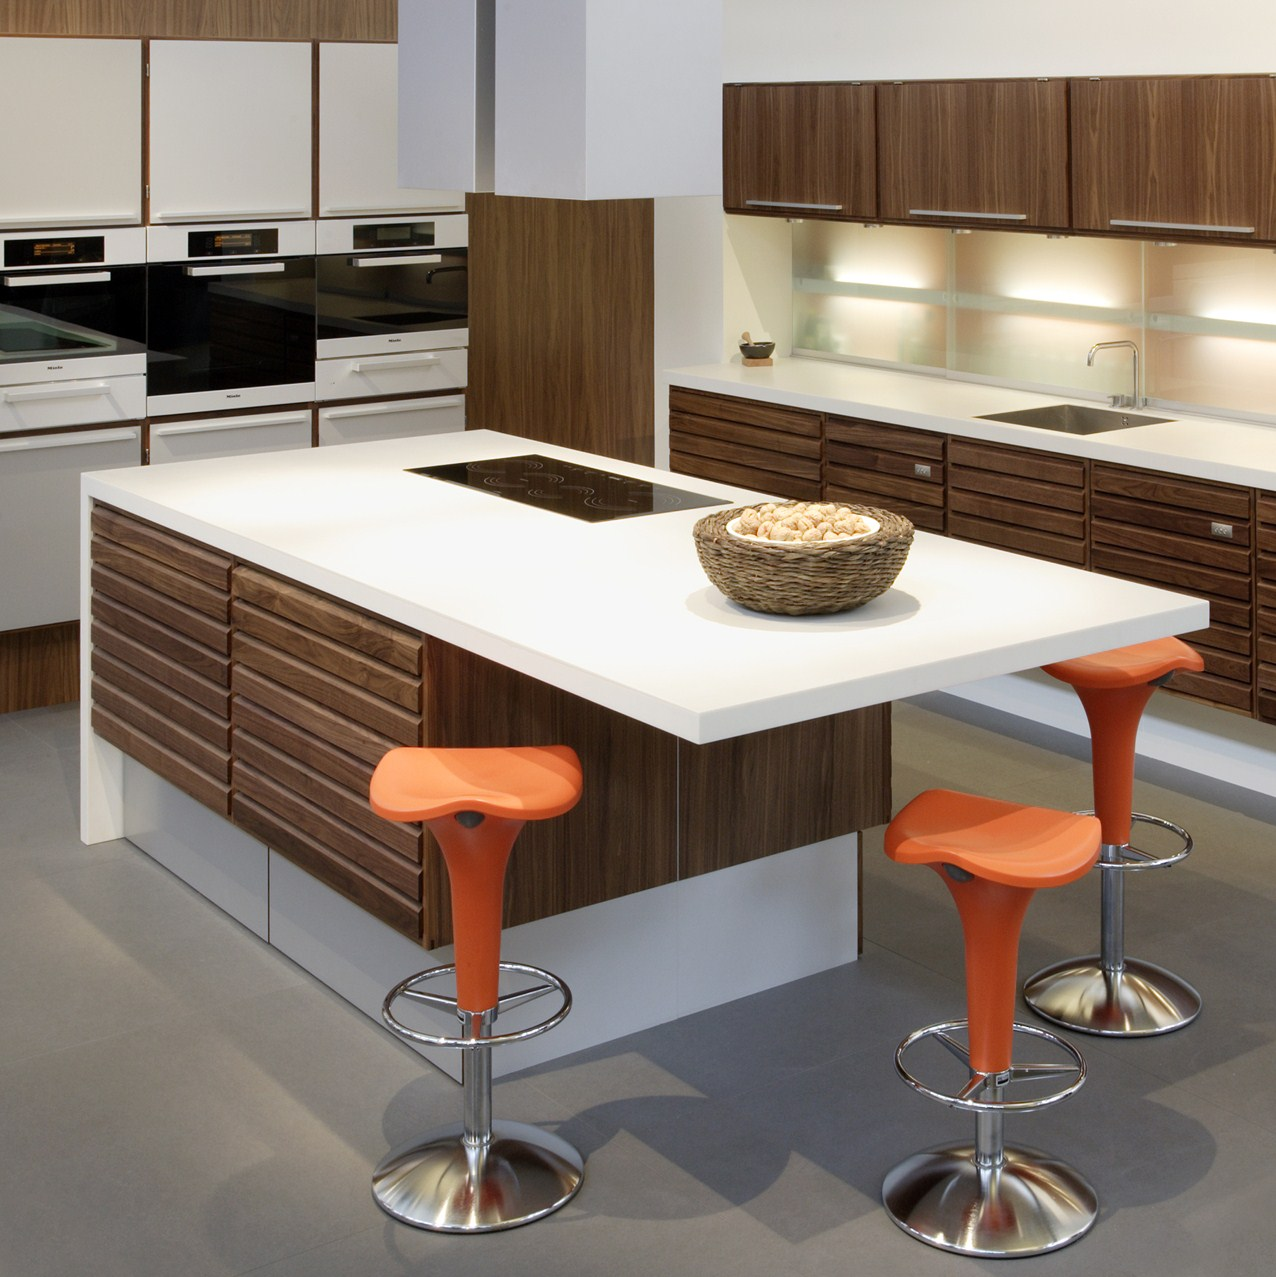 Experts of kitchen worktops of uk on corian repair - Isla de cocina ...